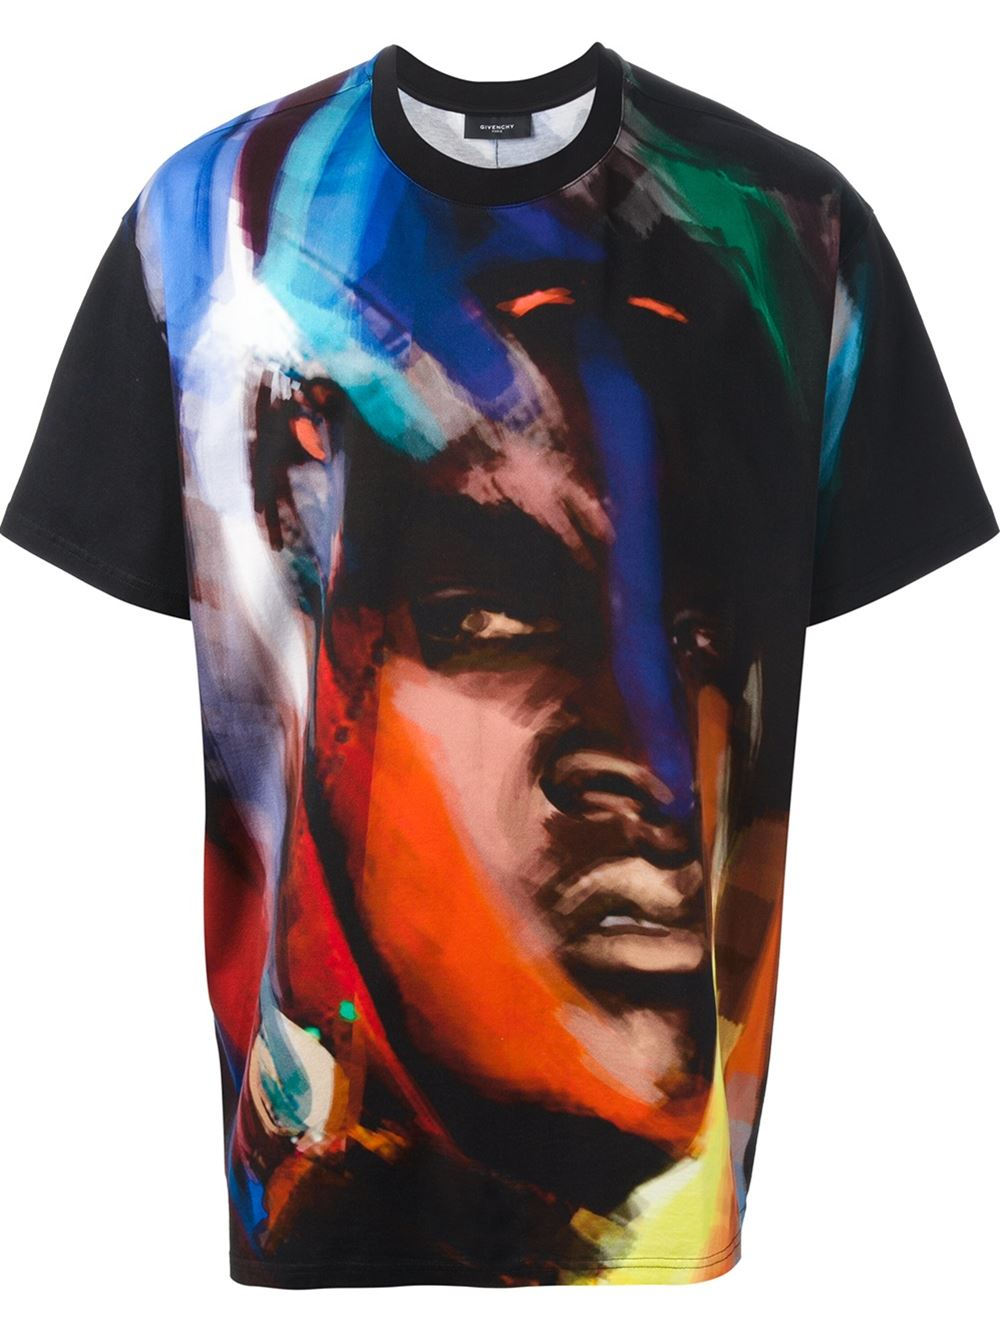 278a7bf72094 Lyst - Givenchy Abstract Face Print Tshirt in Black for Men